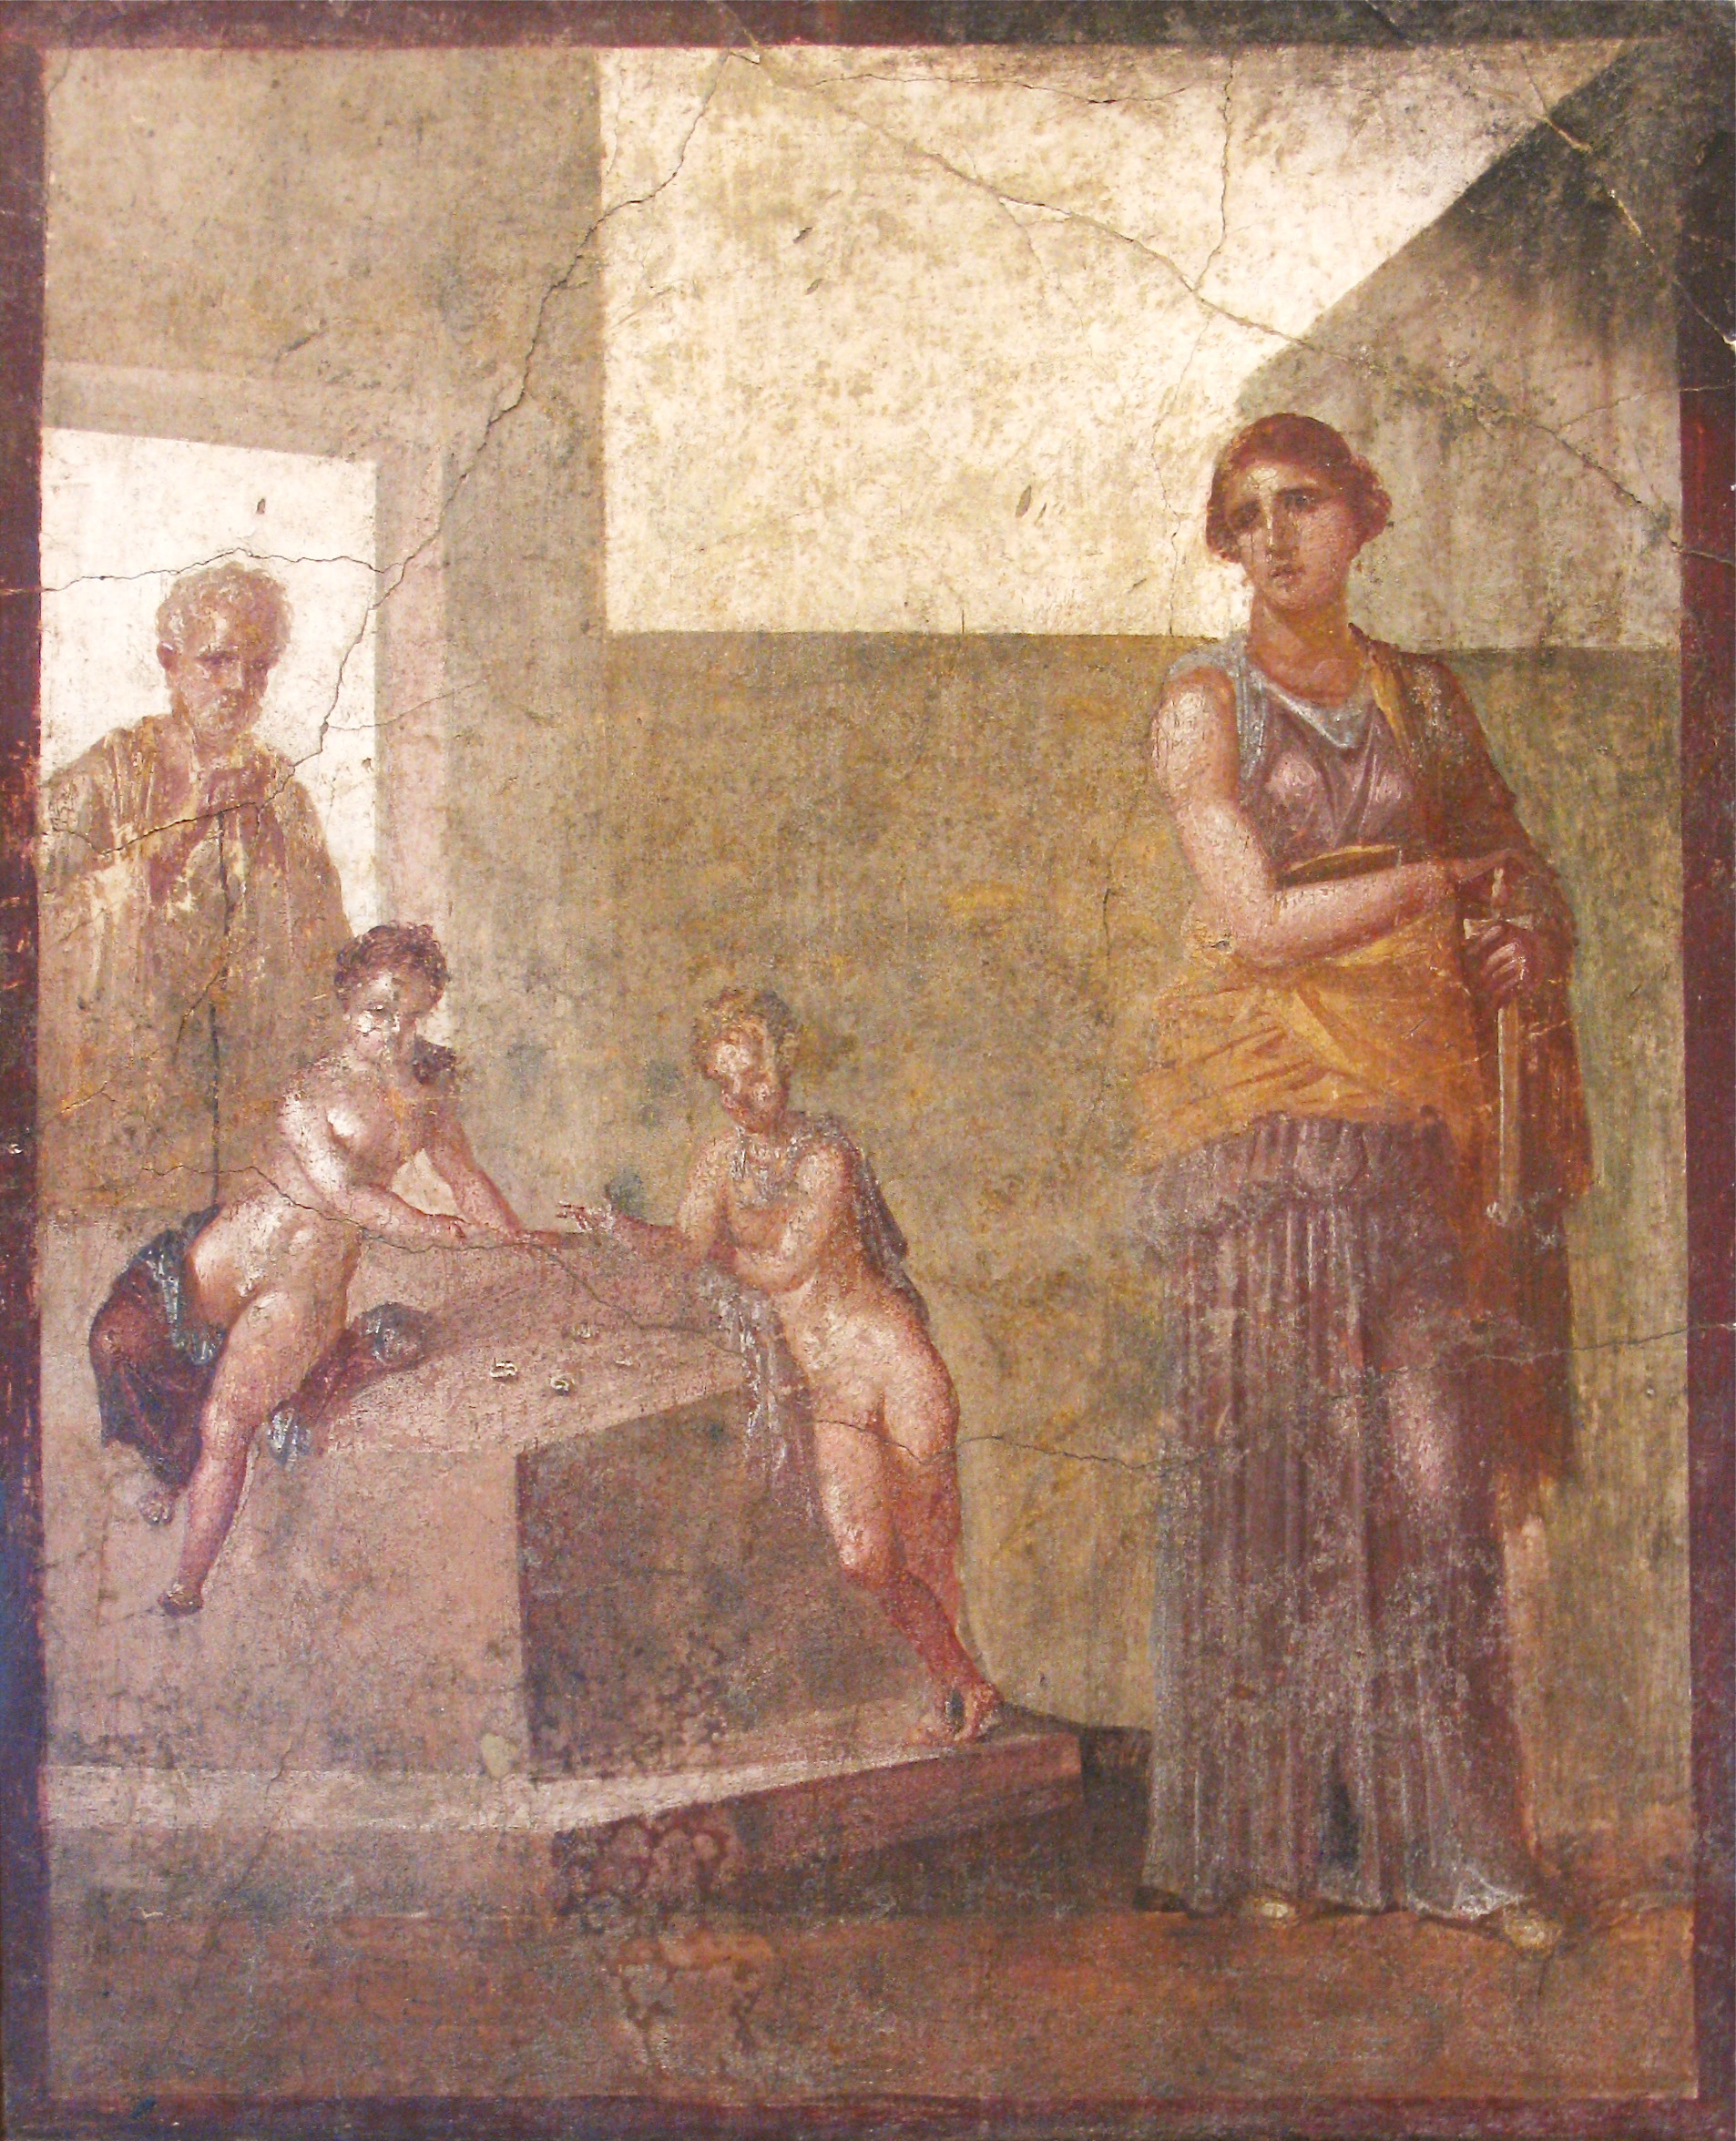 medea s revenge ultimately makes her far Jason s actions towards medea cause her to want revenge she goes as far as using her and killing her children by her own hands ultimately puts medea.